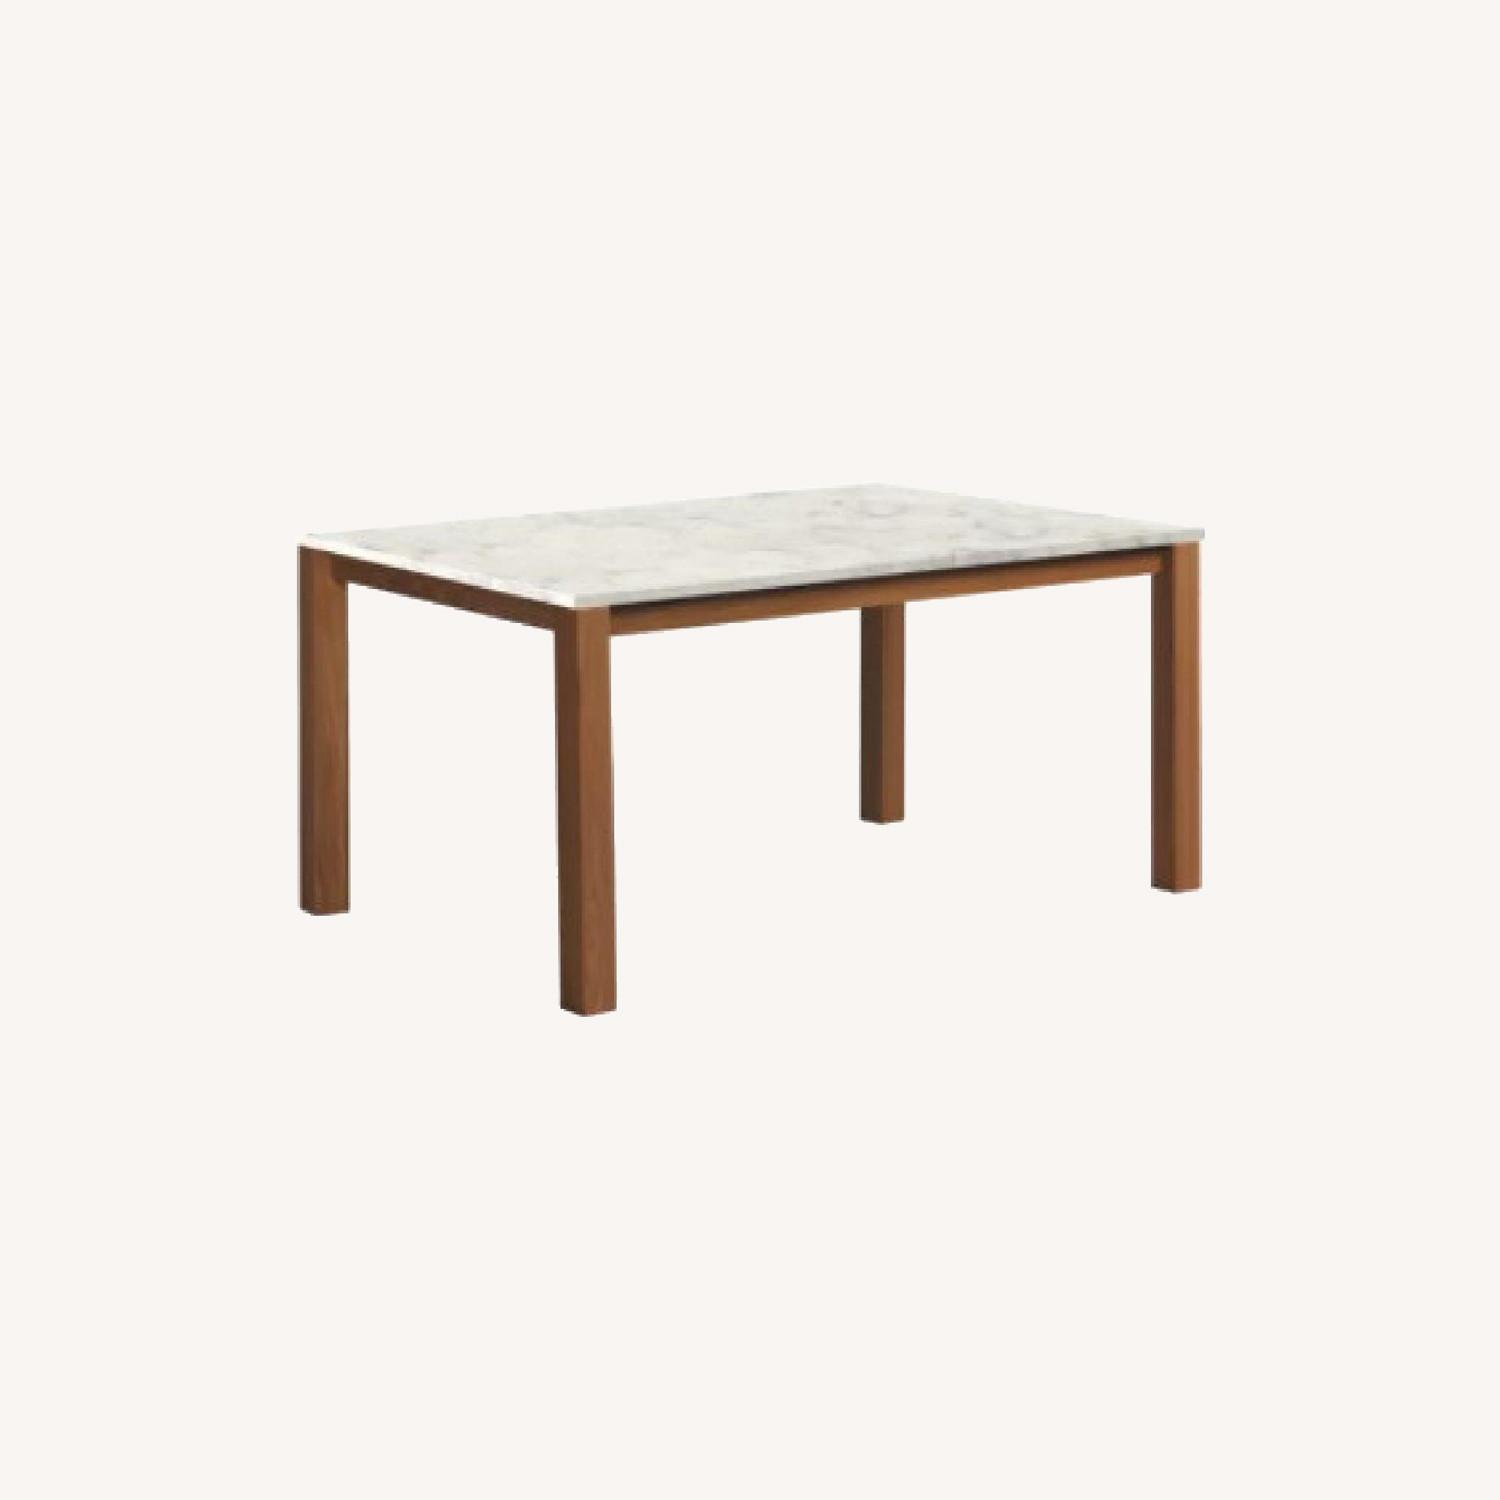 Room & Board White Quartz Top Linden Dining Table - image-9